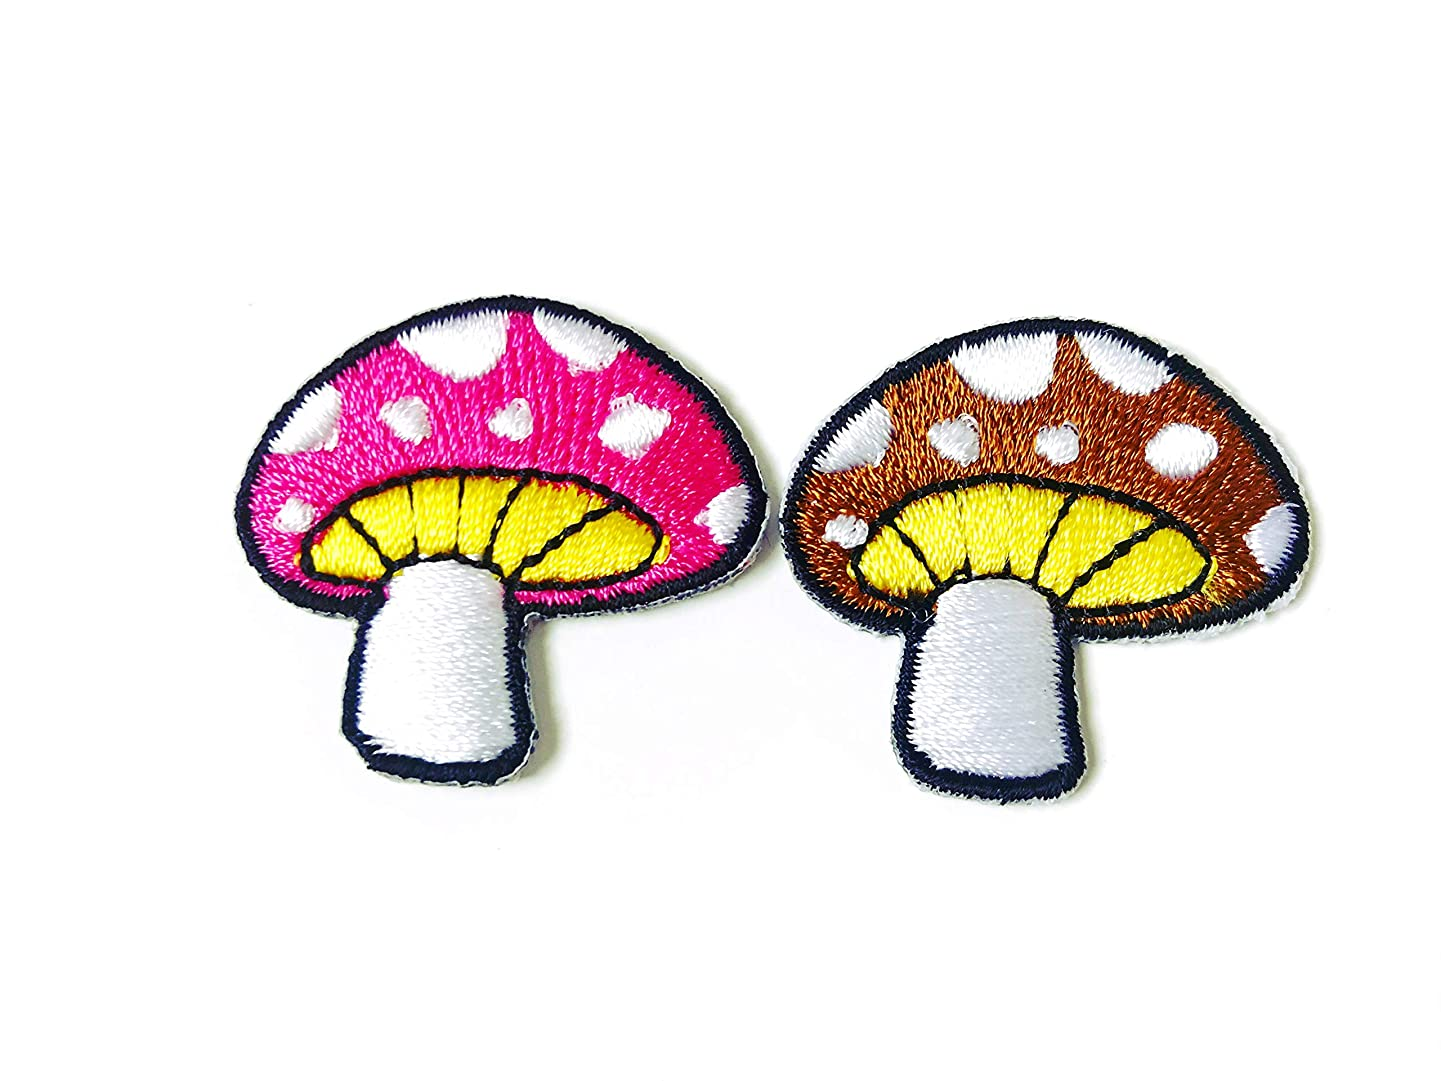 Set 2 pcs. Mushroom Magic Psylo Pink Brown with White Spots Jacket T-Shirt Sew Iron on Embroidered Applique Badge Sign Patch Clothing